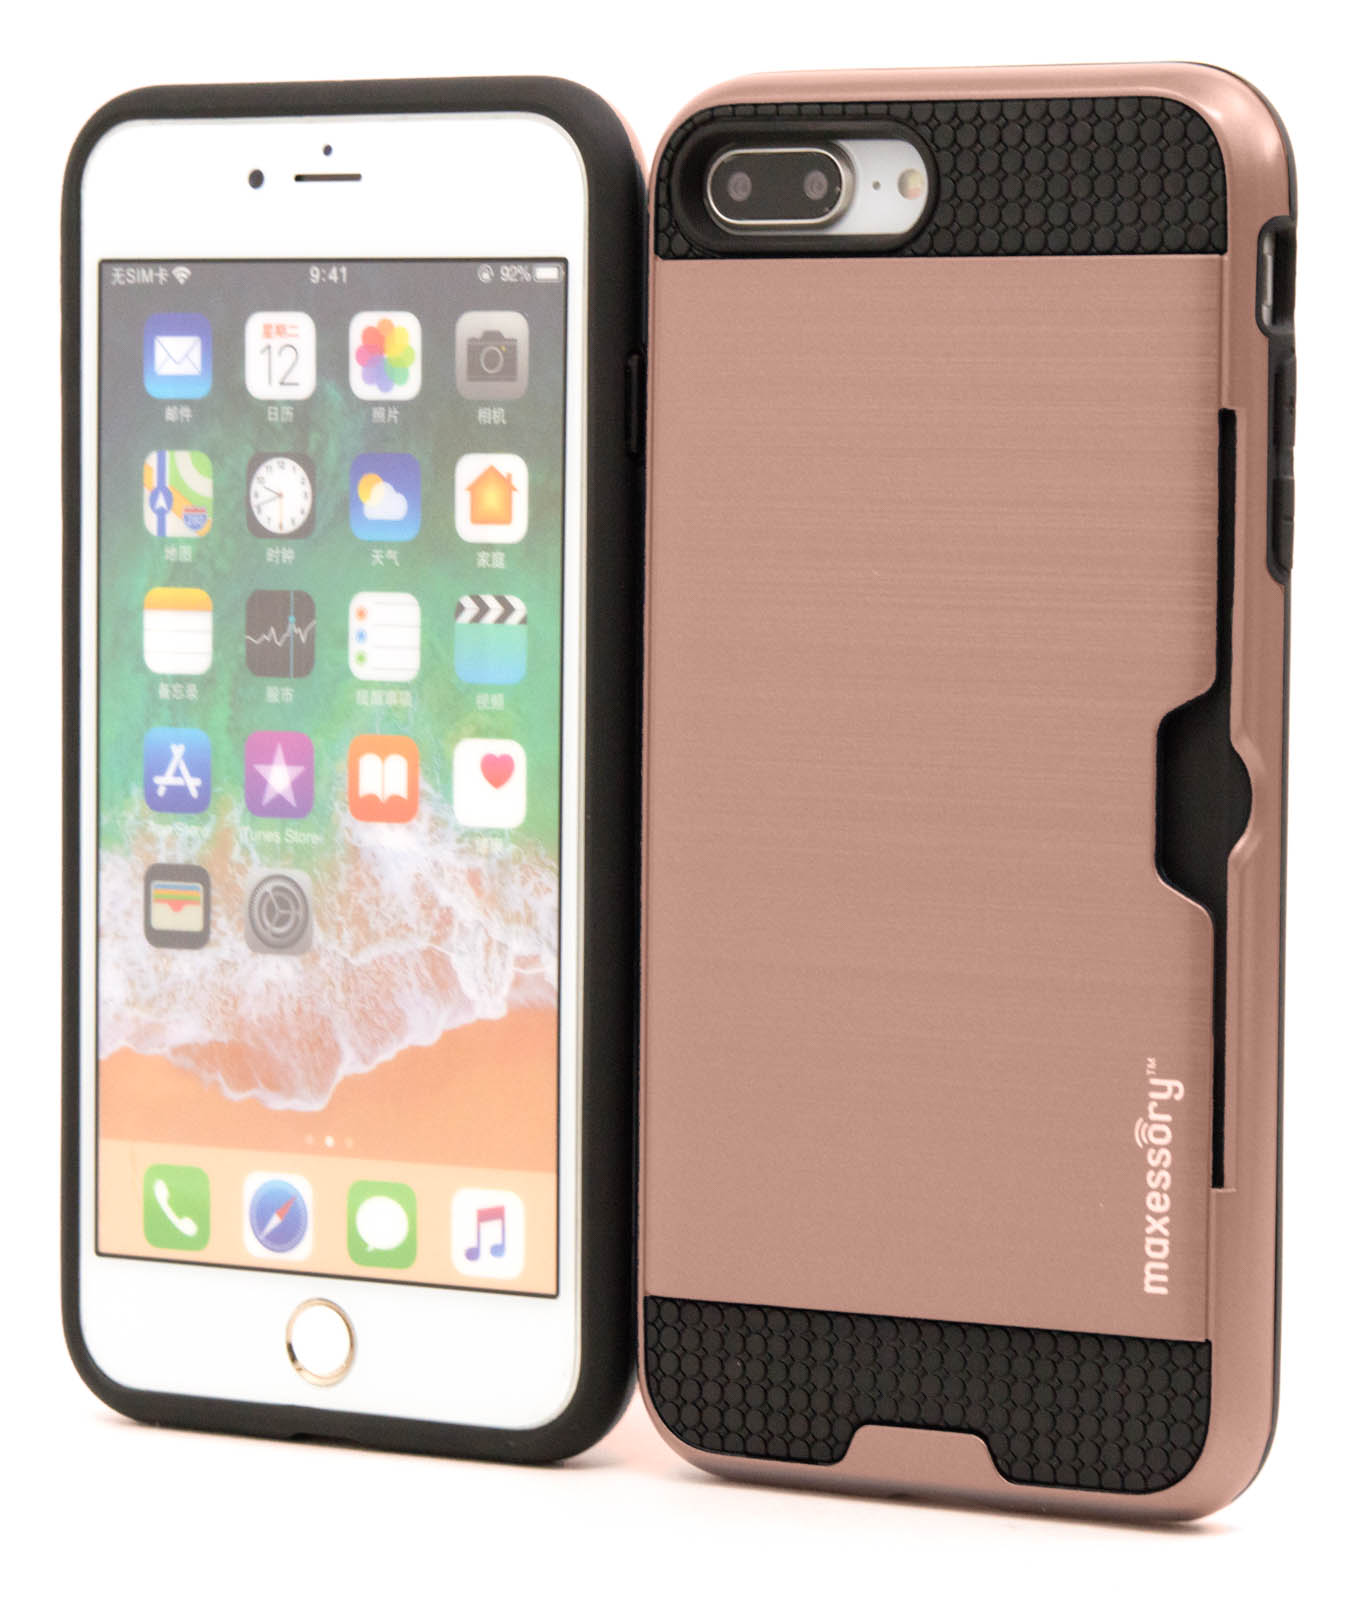 Apple-iPhone-7-Plus-8-Plus-Premium-Hybrid-Textured-Armor-Shell-Cover-Case thumbnail 35